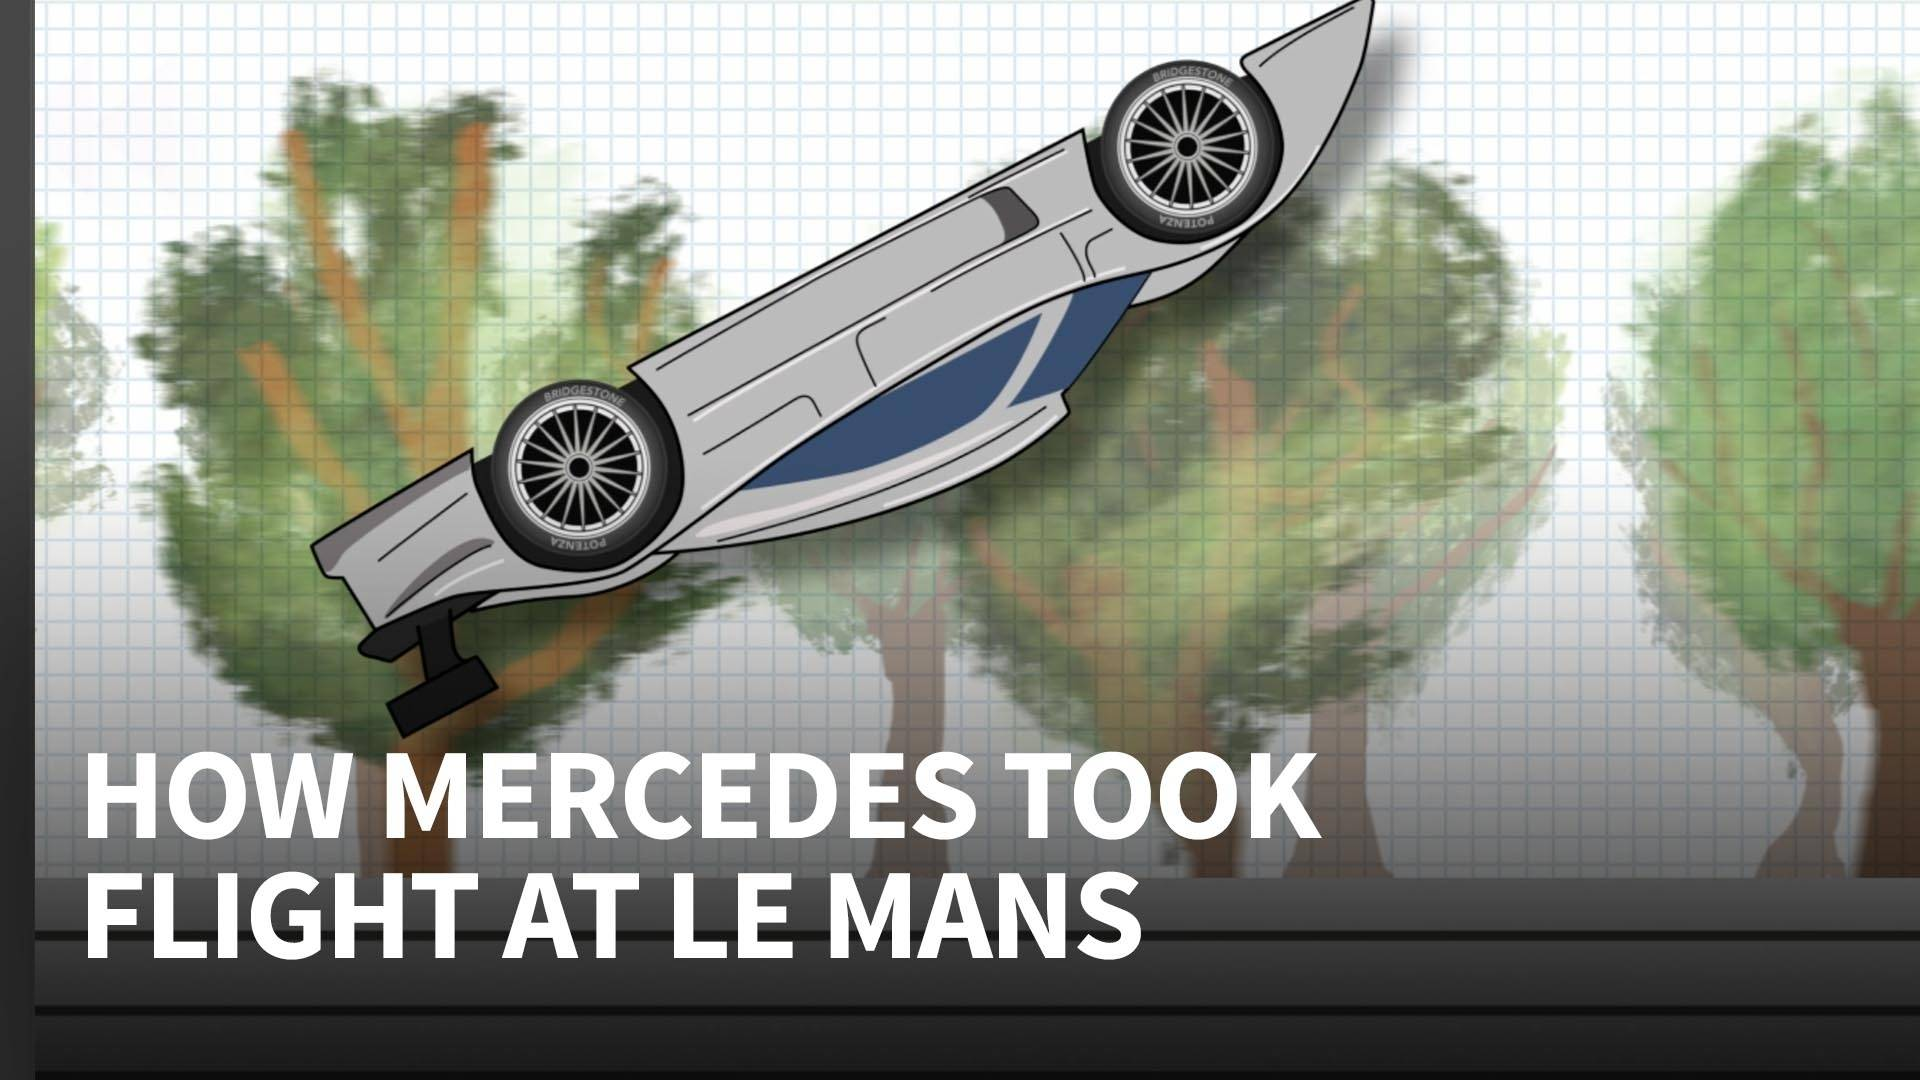 Why The Mercedes Clrs Kept Taking Off At Le Mans 1999